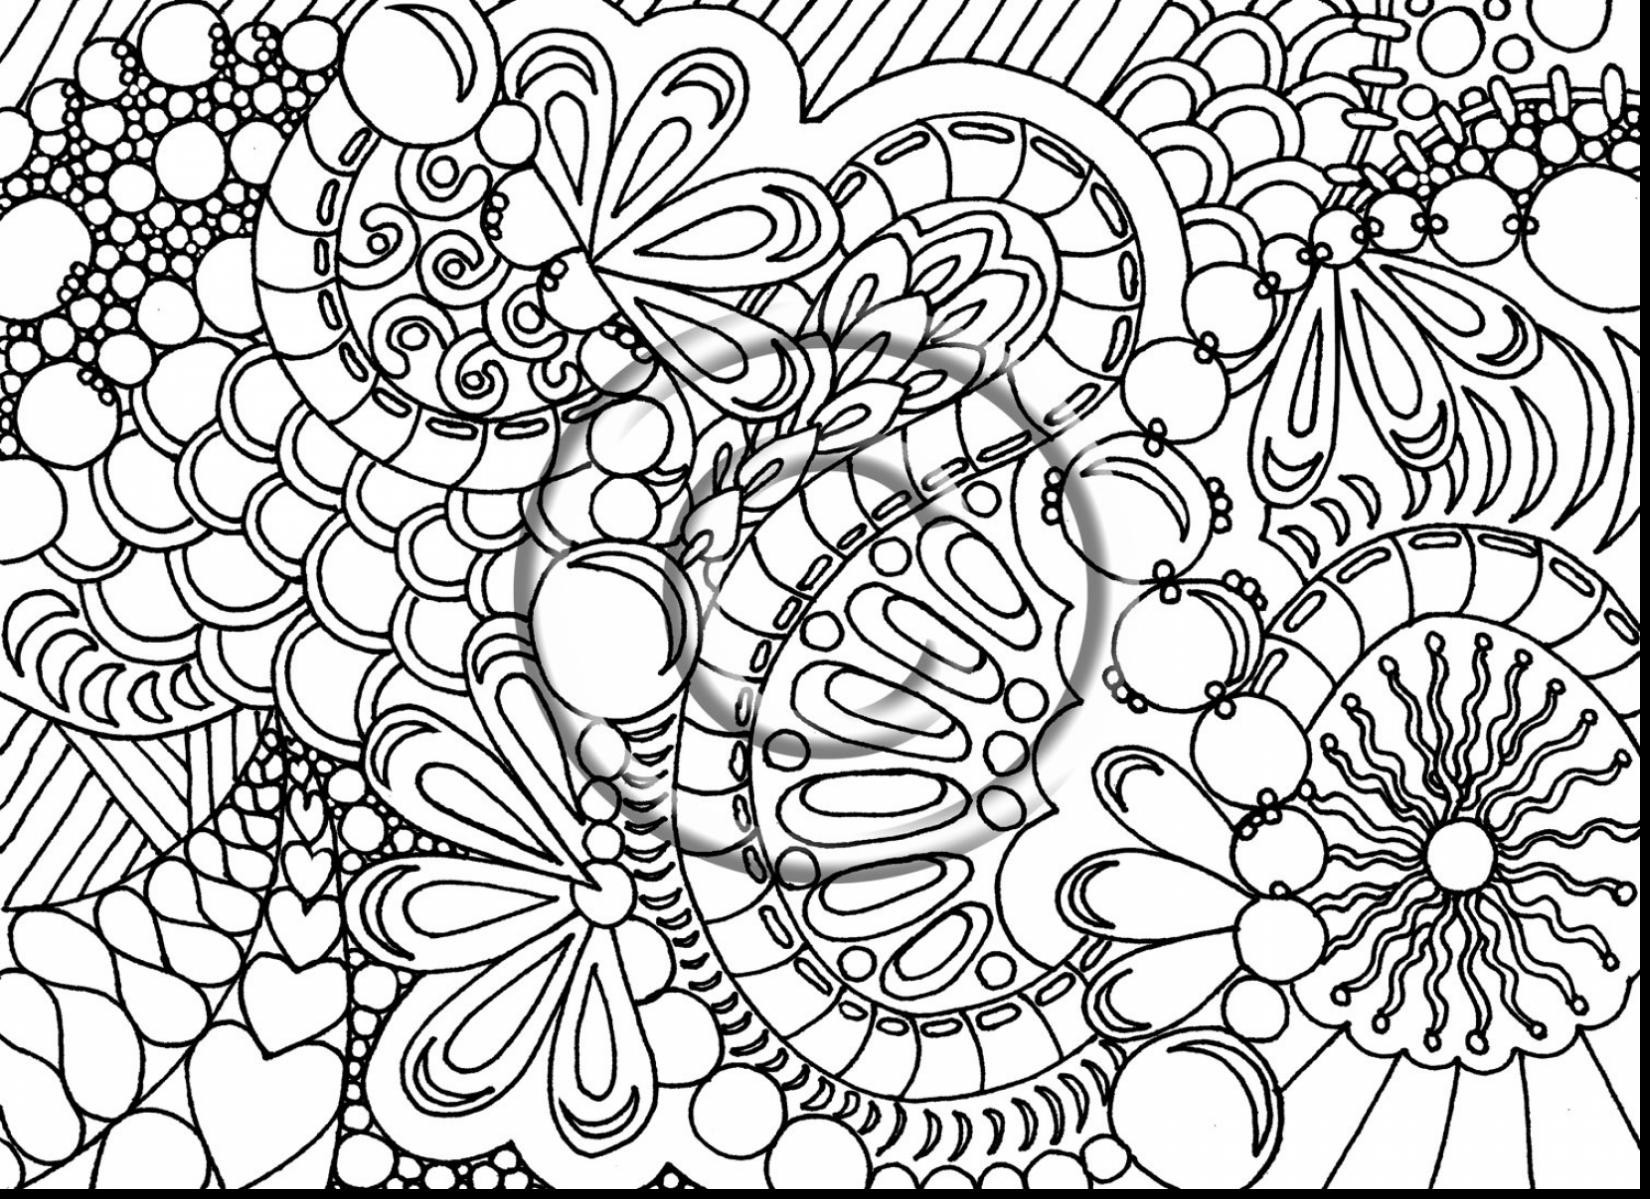 Free Christmas Coloring Pages For Adults Printable Hard To Color With Difficult Great 34 New